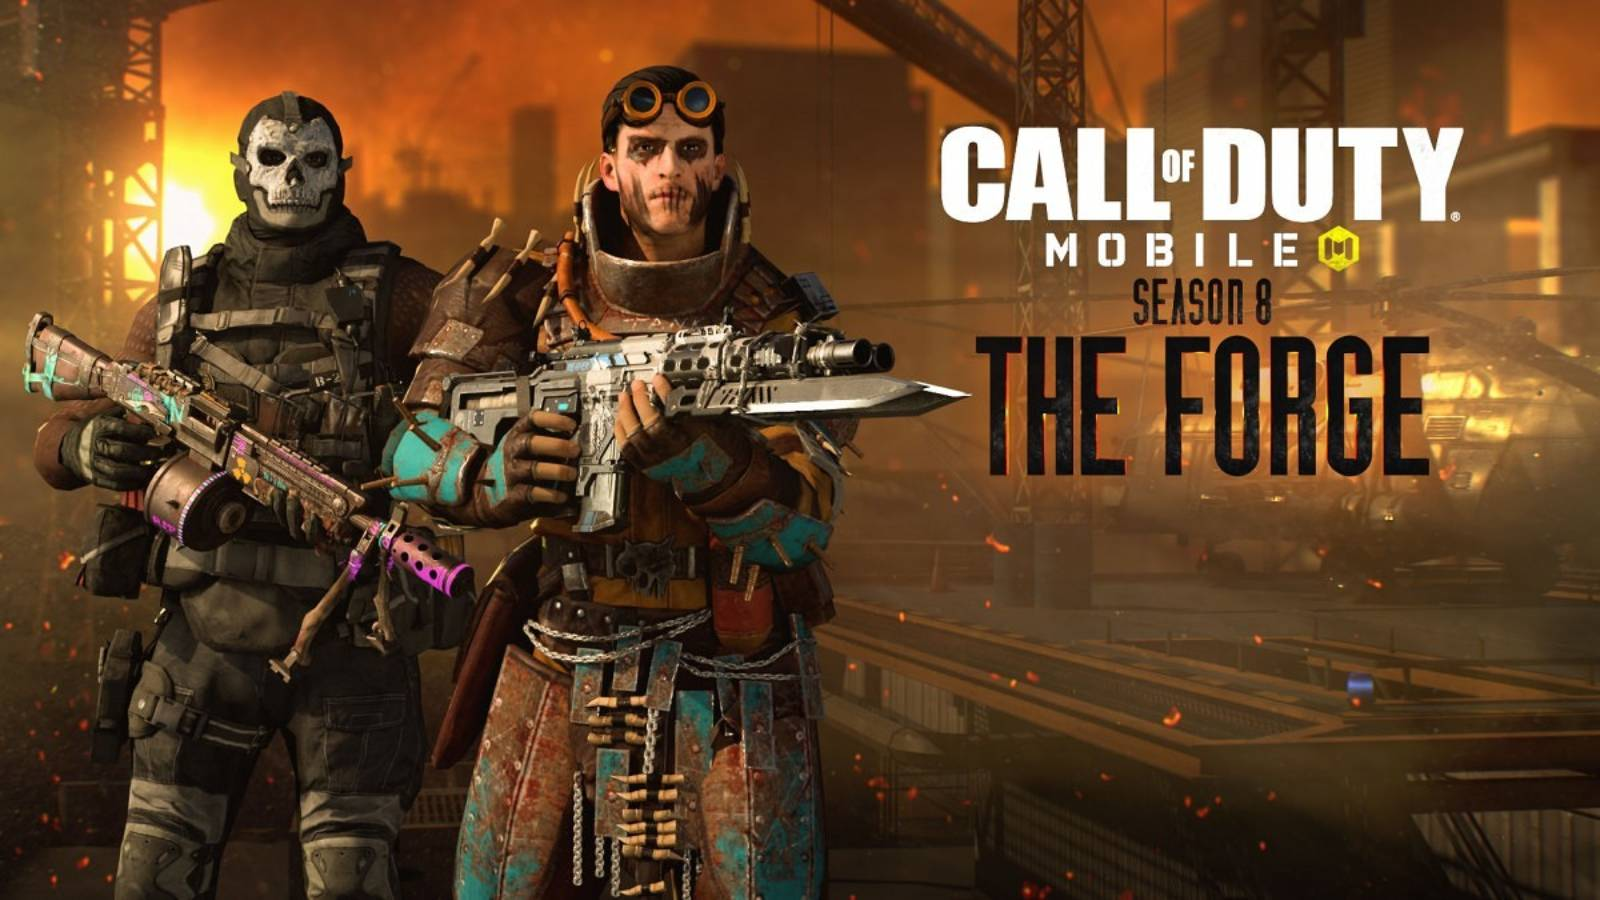 call of duty mobile skins season 8